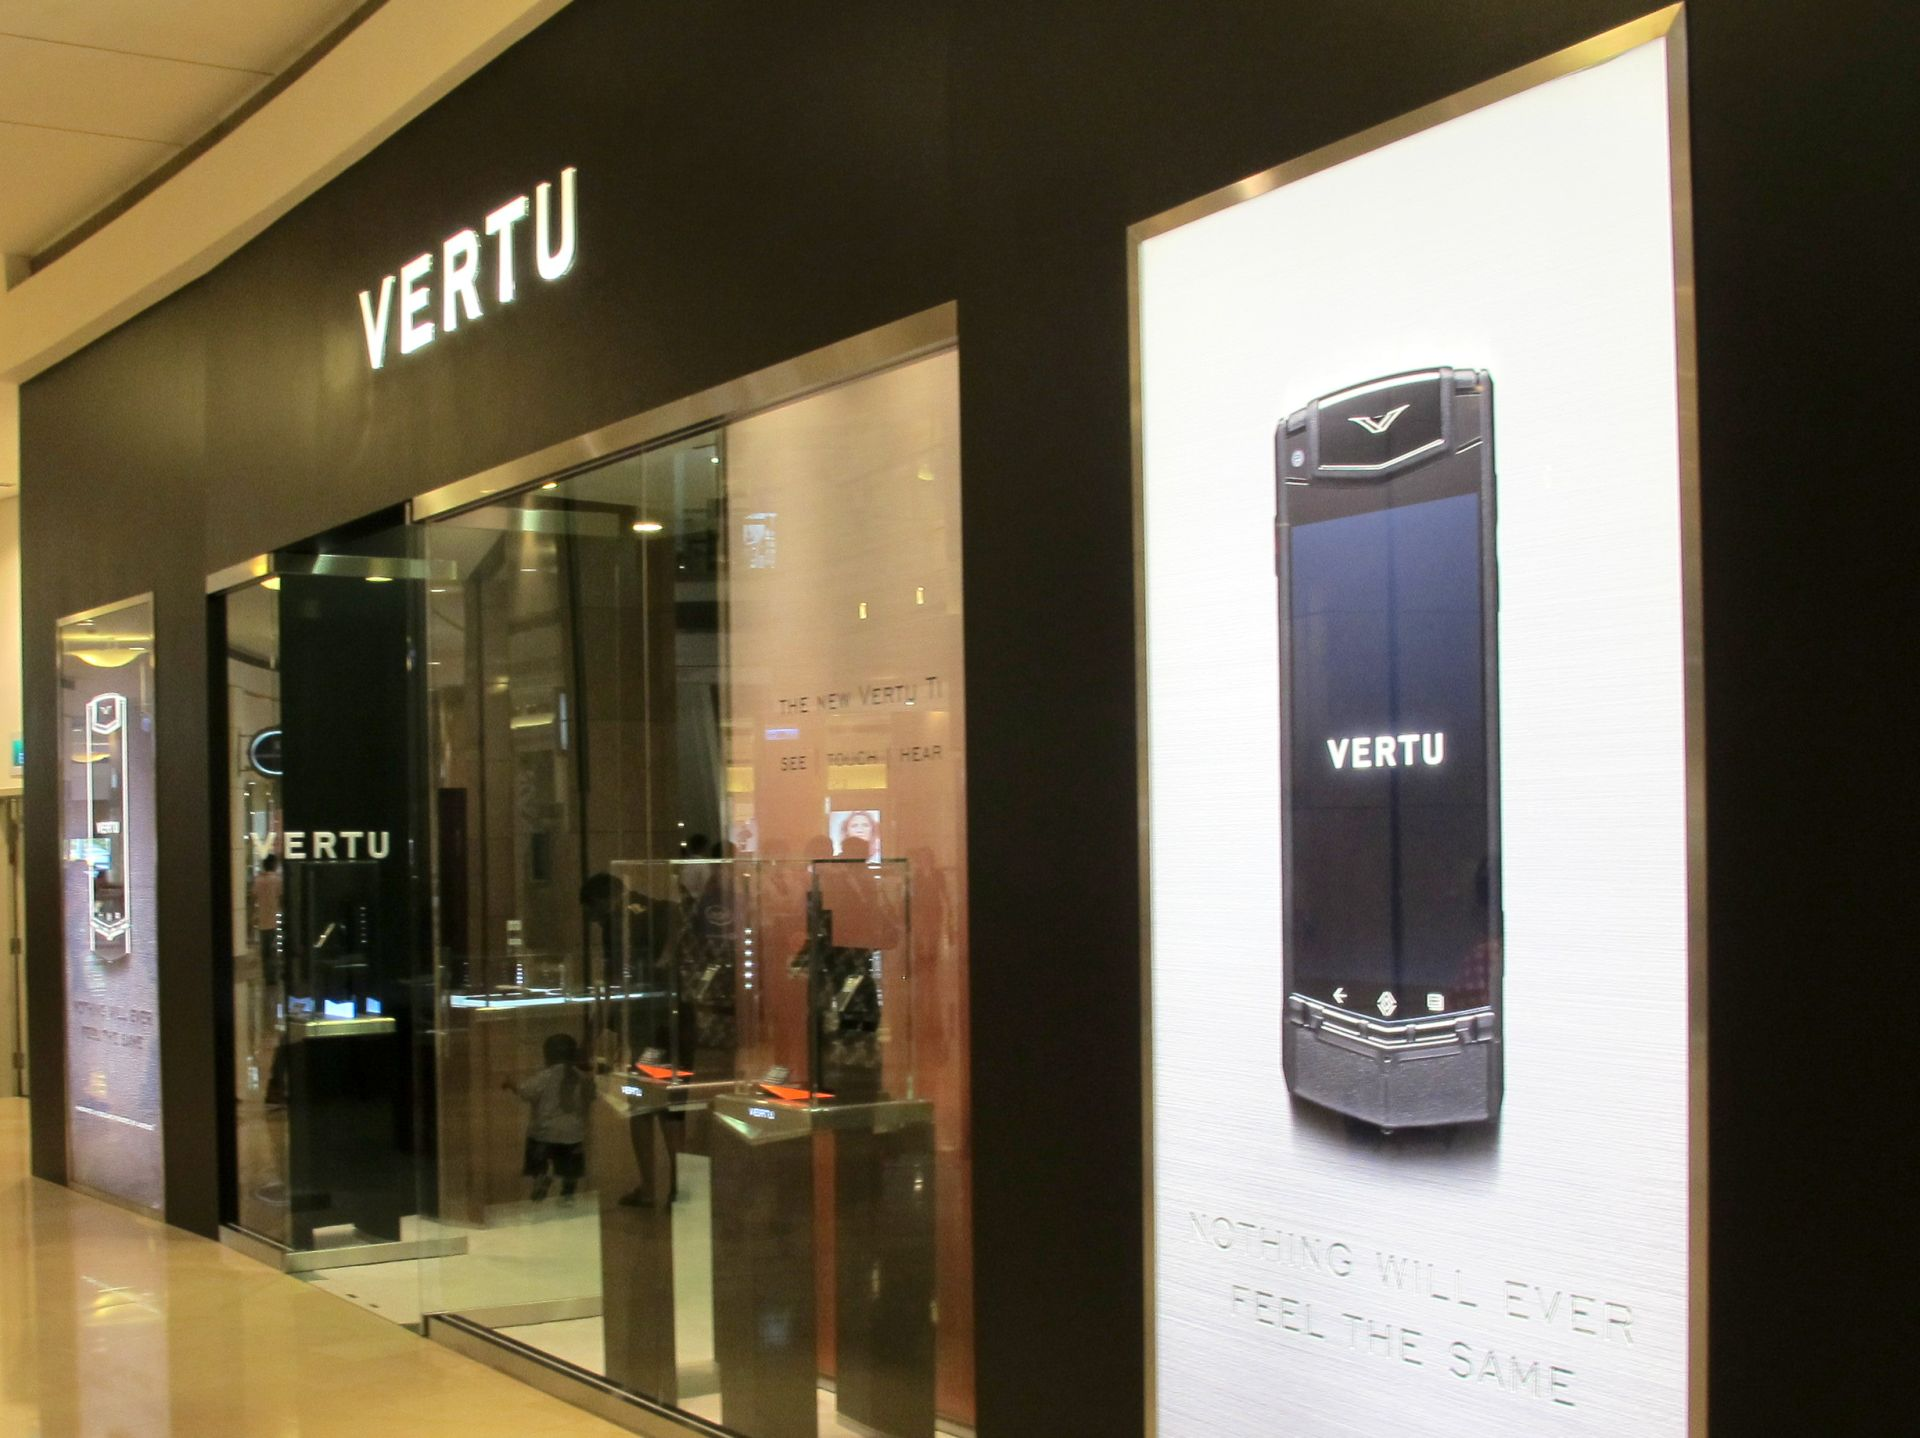 vertu_luxury_mobile_phones_in_store_window